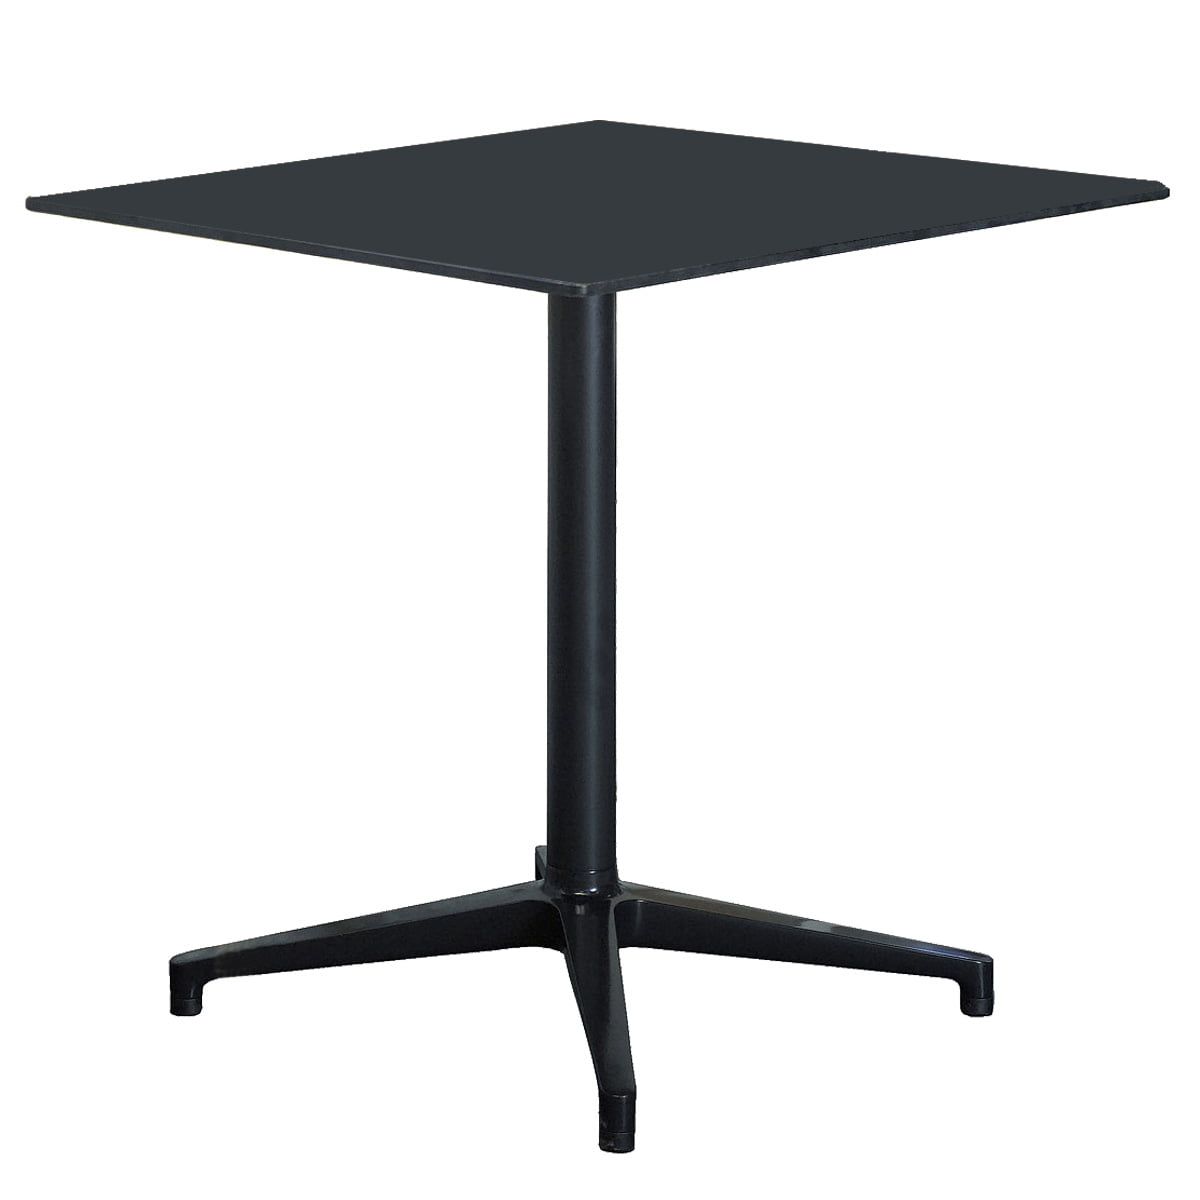 bistro table outdoor vitra. Black Bedroom Furniture Sets. Home Design Ideas